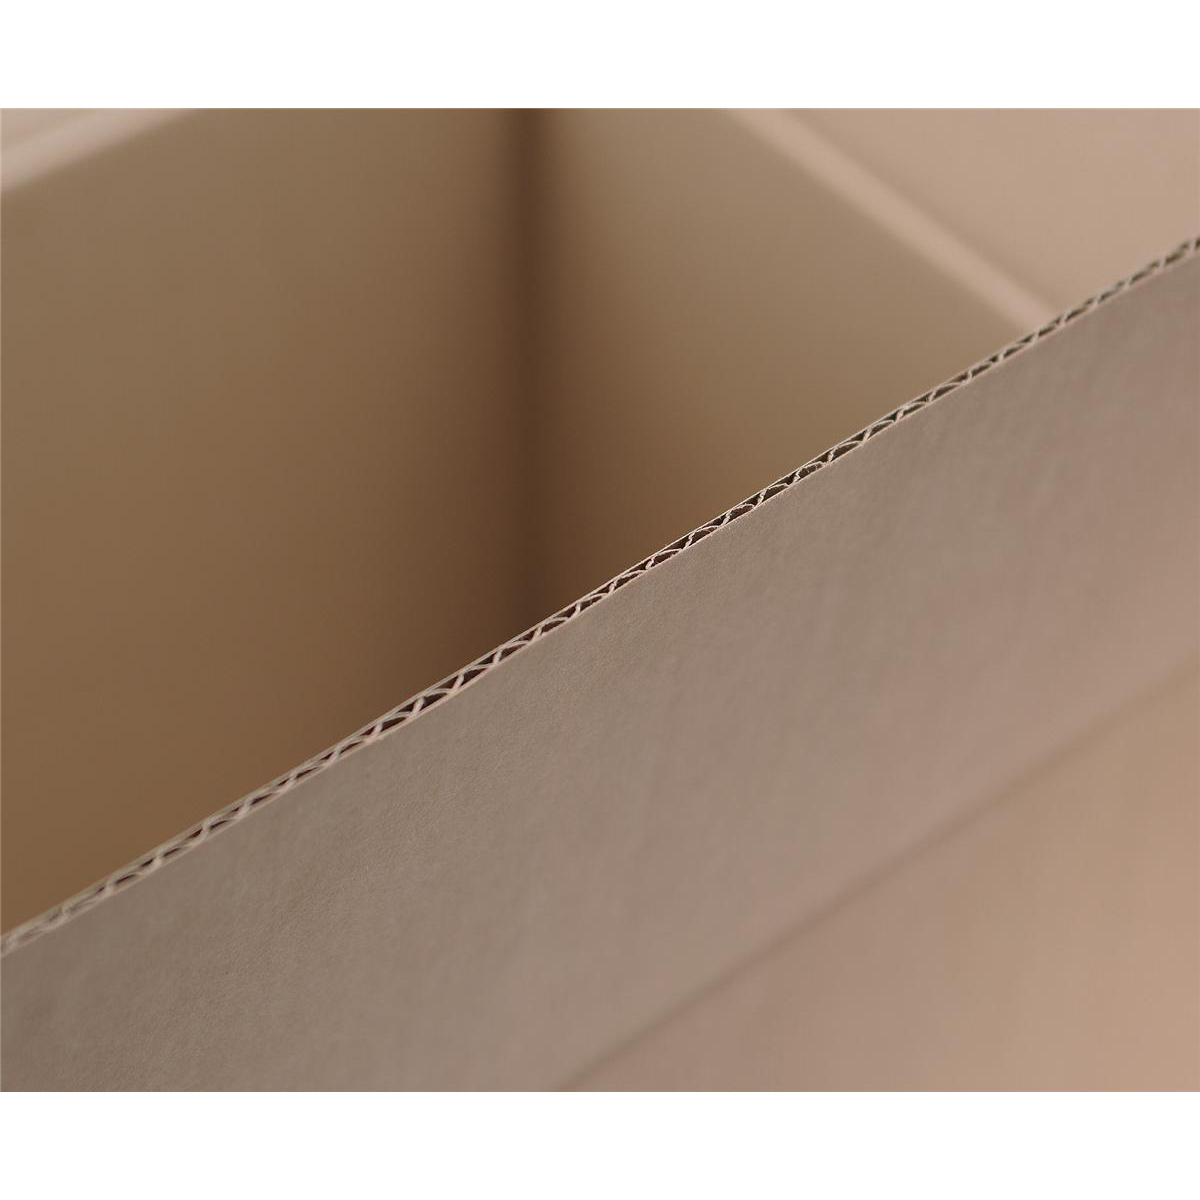 Packing Carton Single Wall Strong Flat Packed 482x305x305mm Brown Pack 25